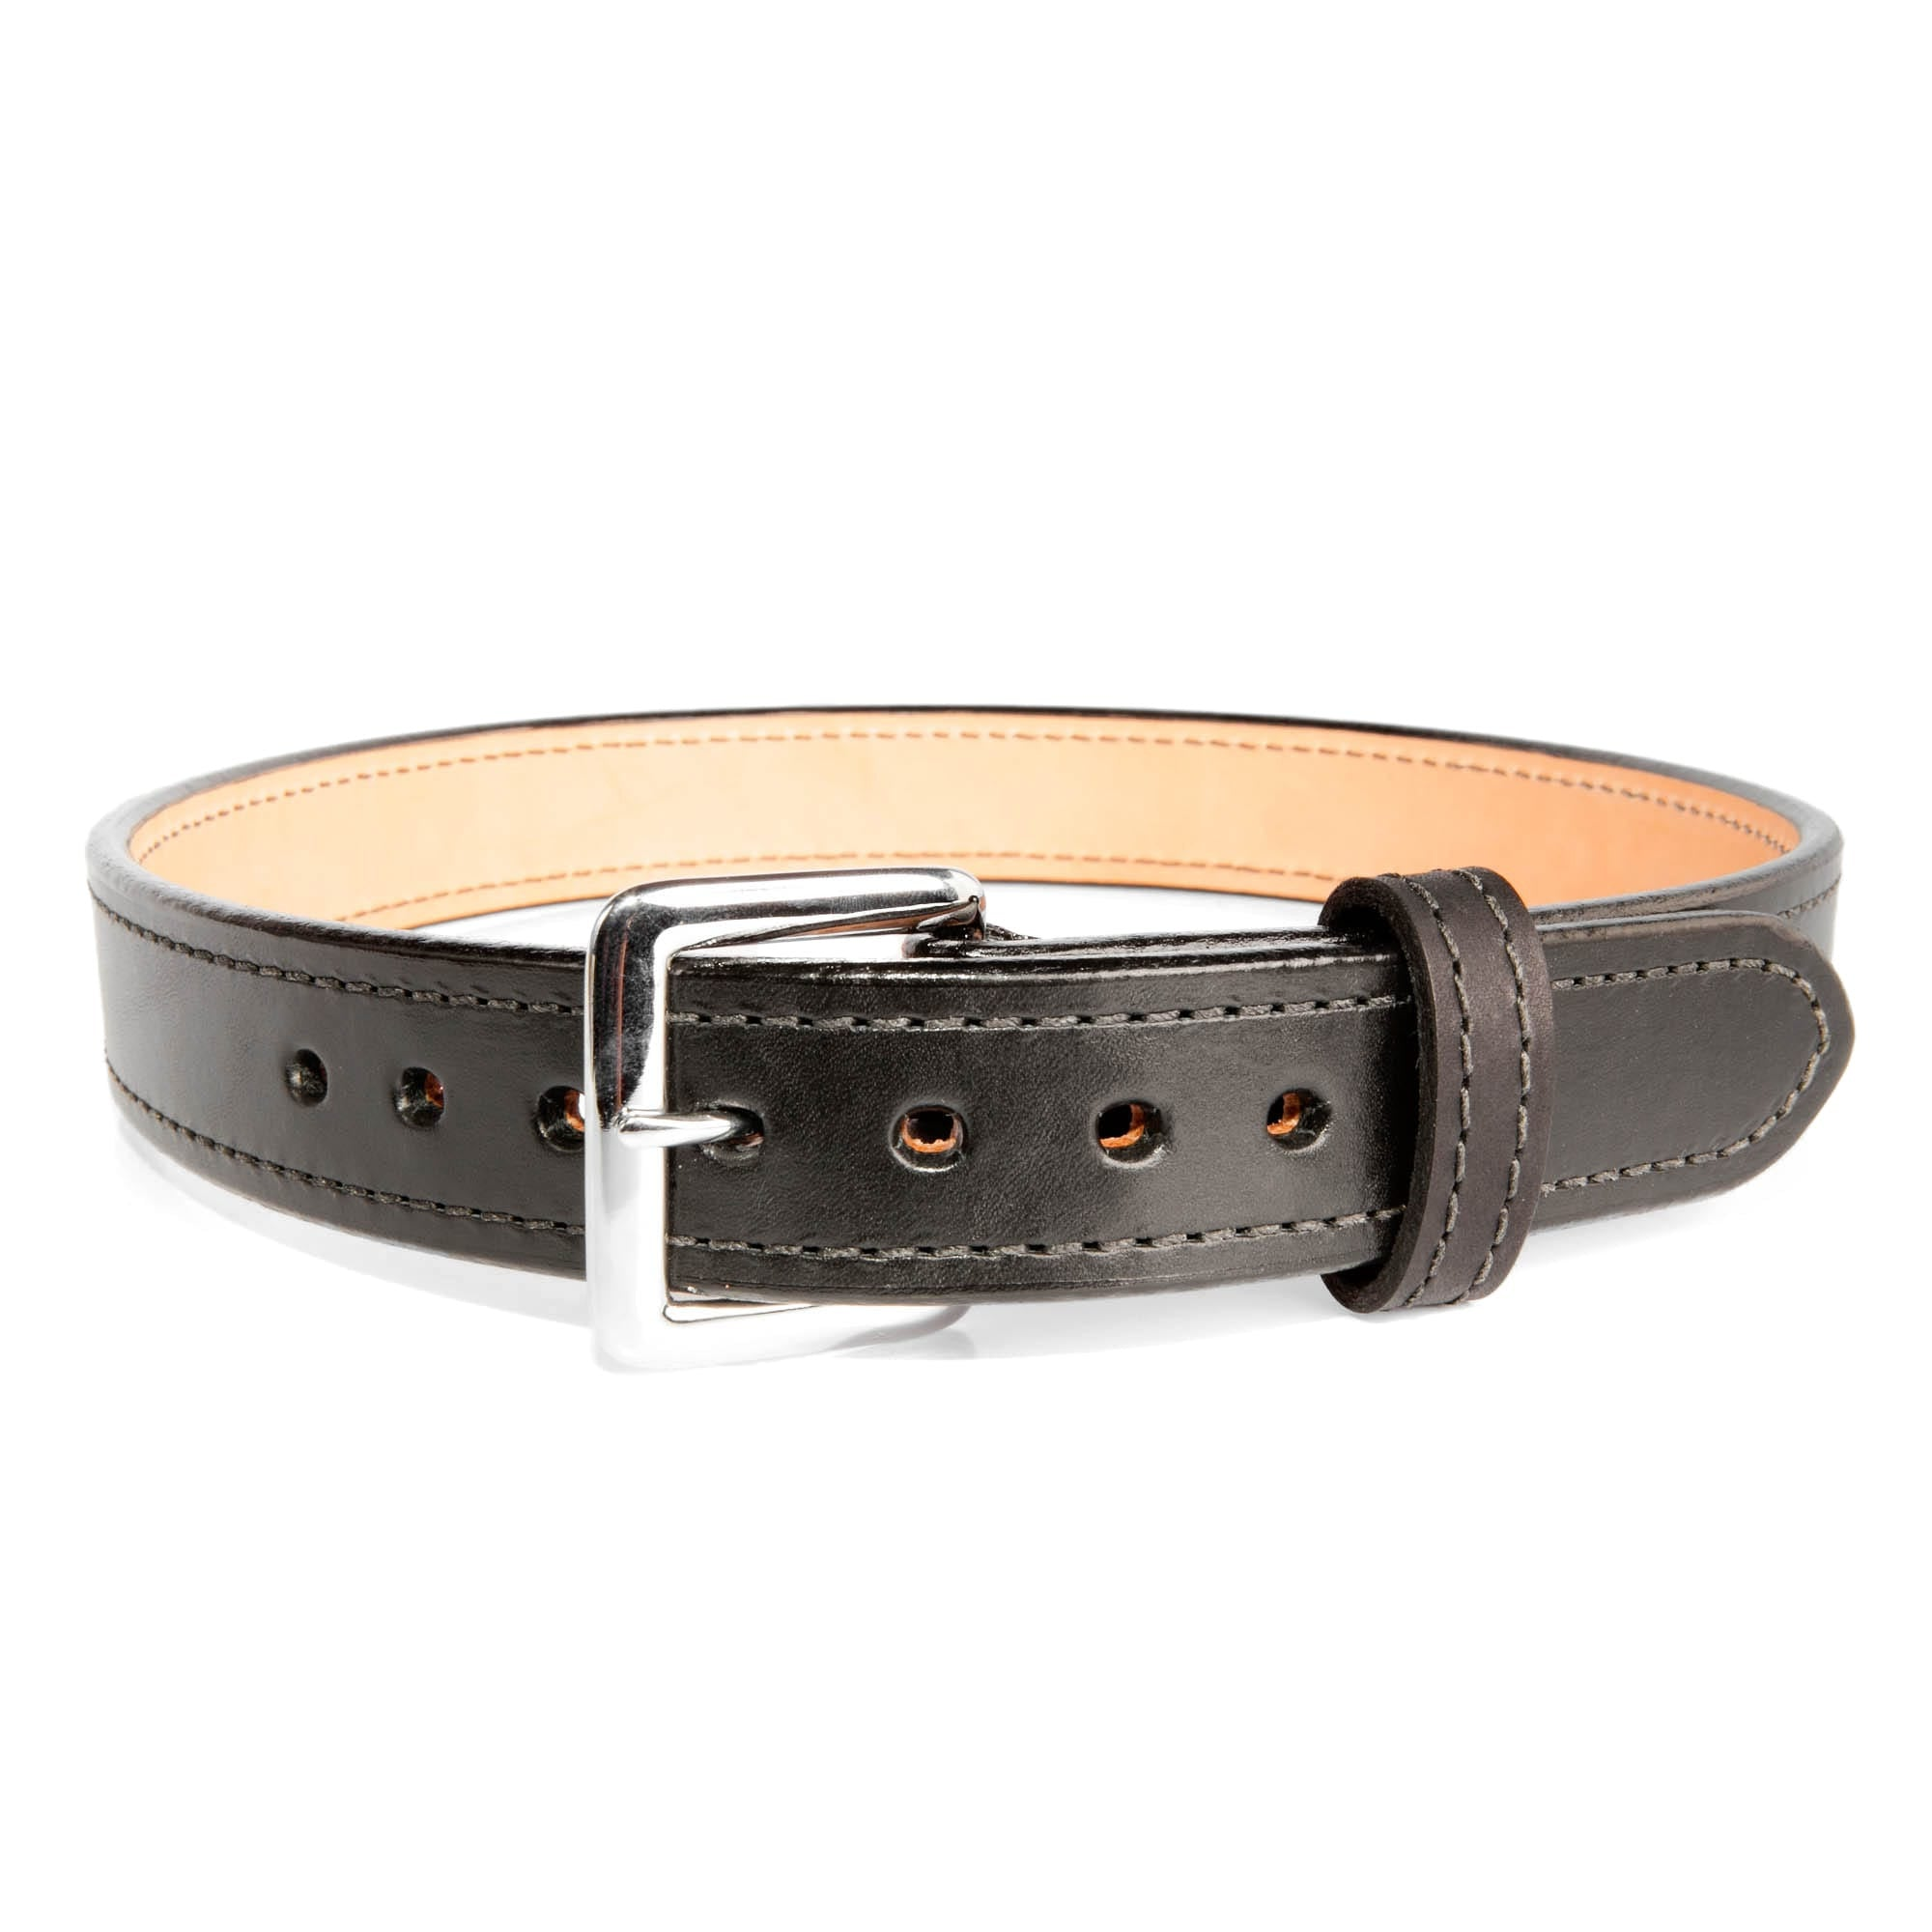 Image result for belt